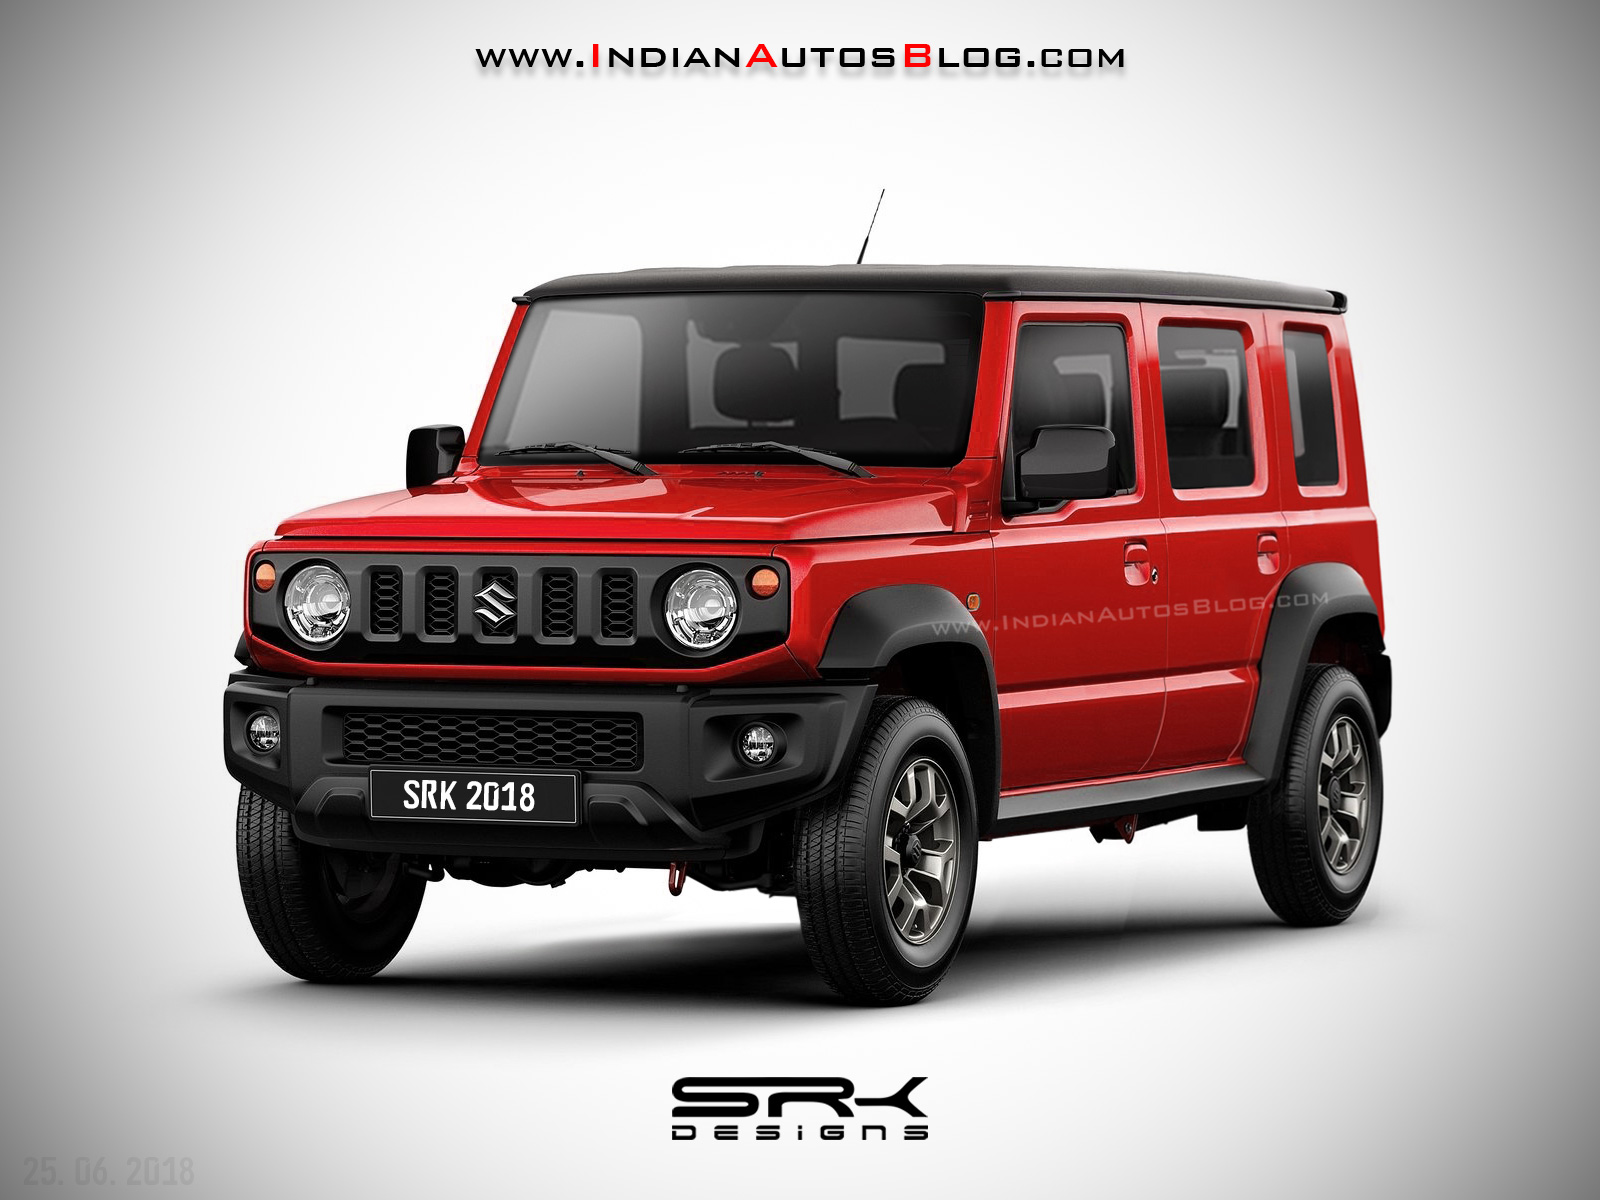 2019 Suzuki Jimny: News, Design, Release >> 2019 Suzuki Jimny 5 Door Long Wheelbase Iab Rendering